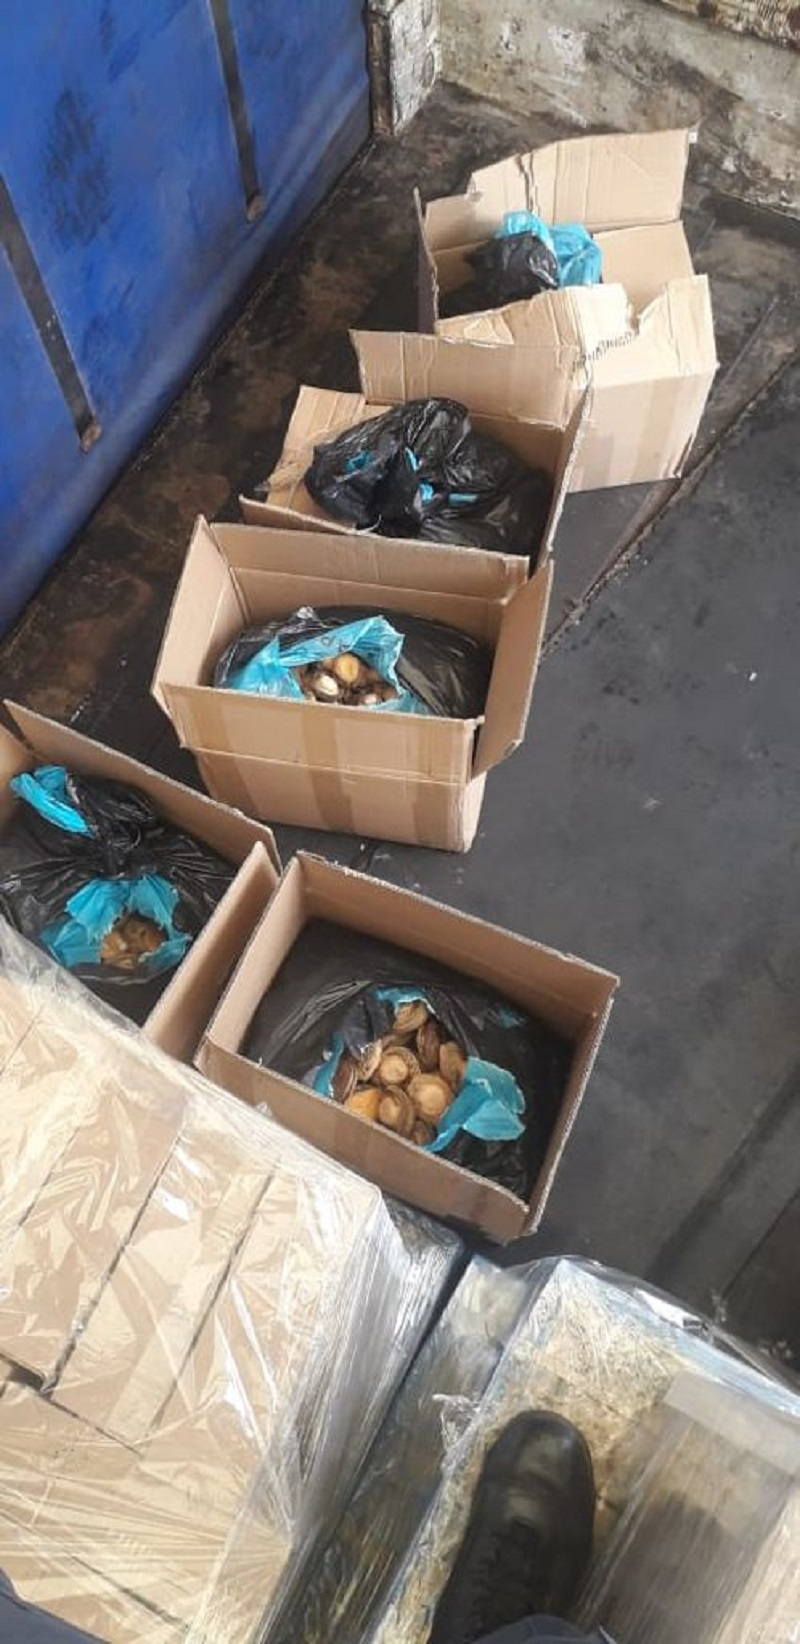 Abalone worth an estimated R2 million confiscated in Brackenfell